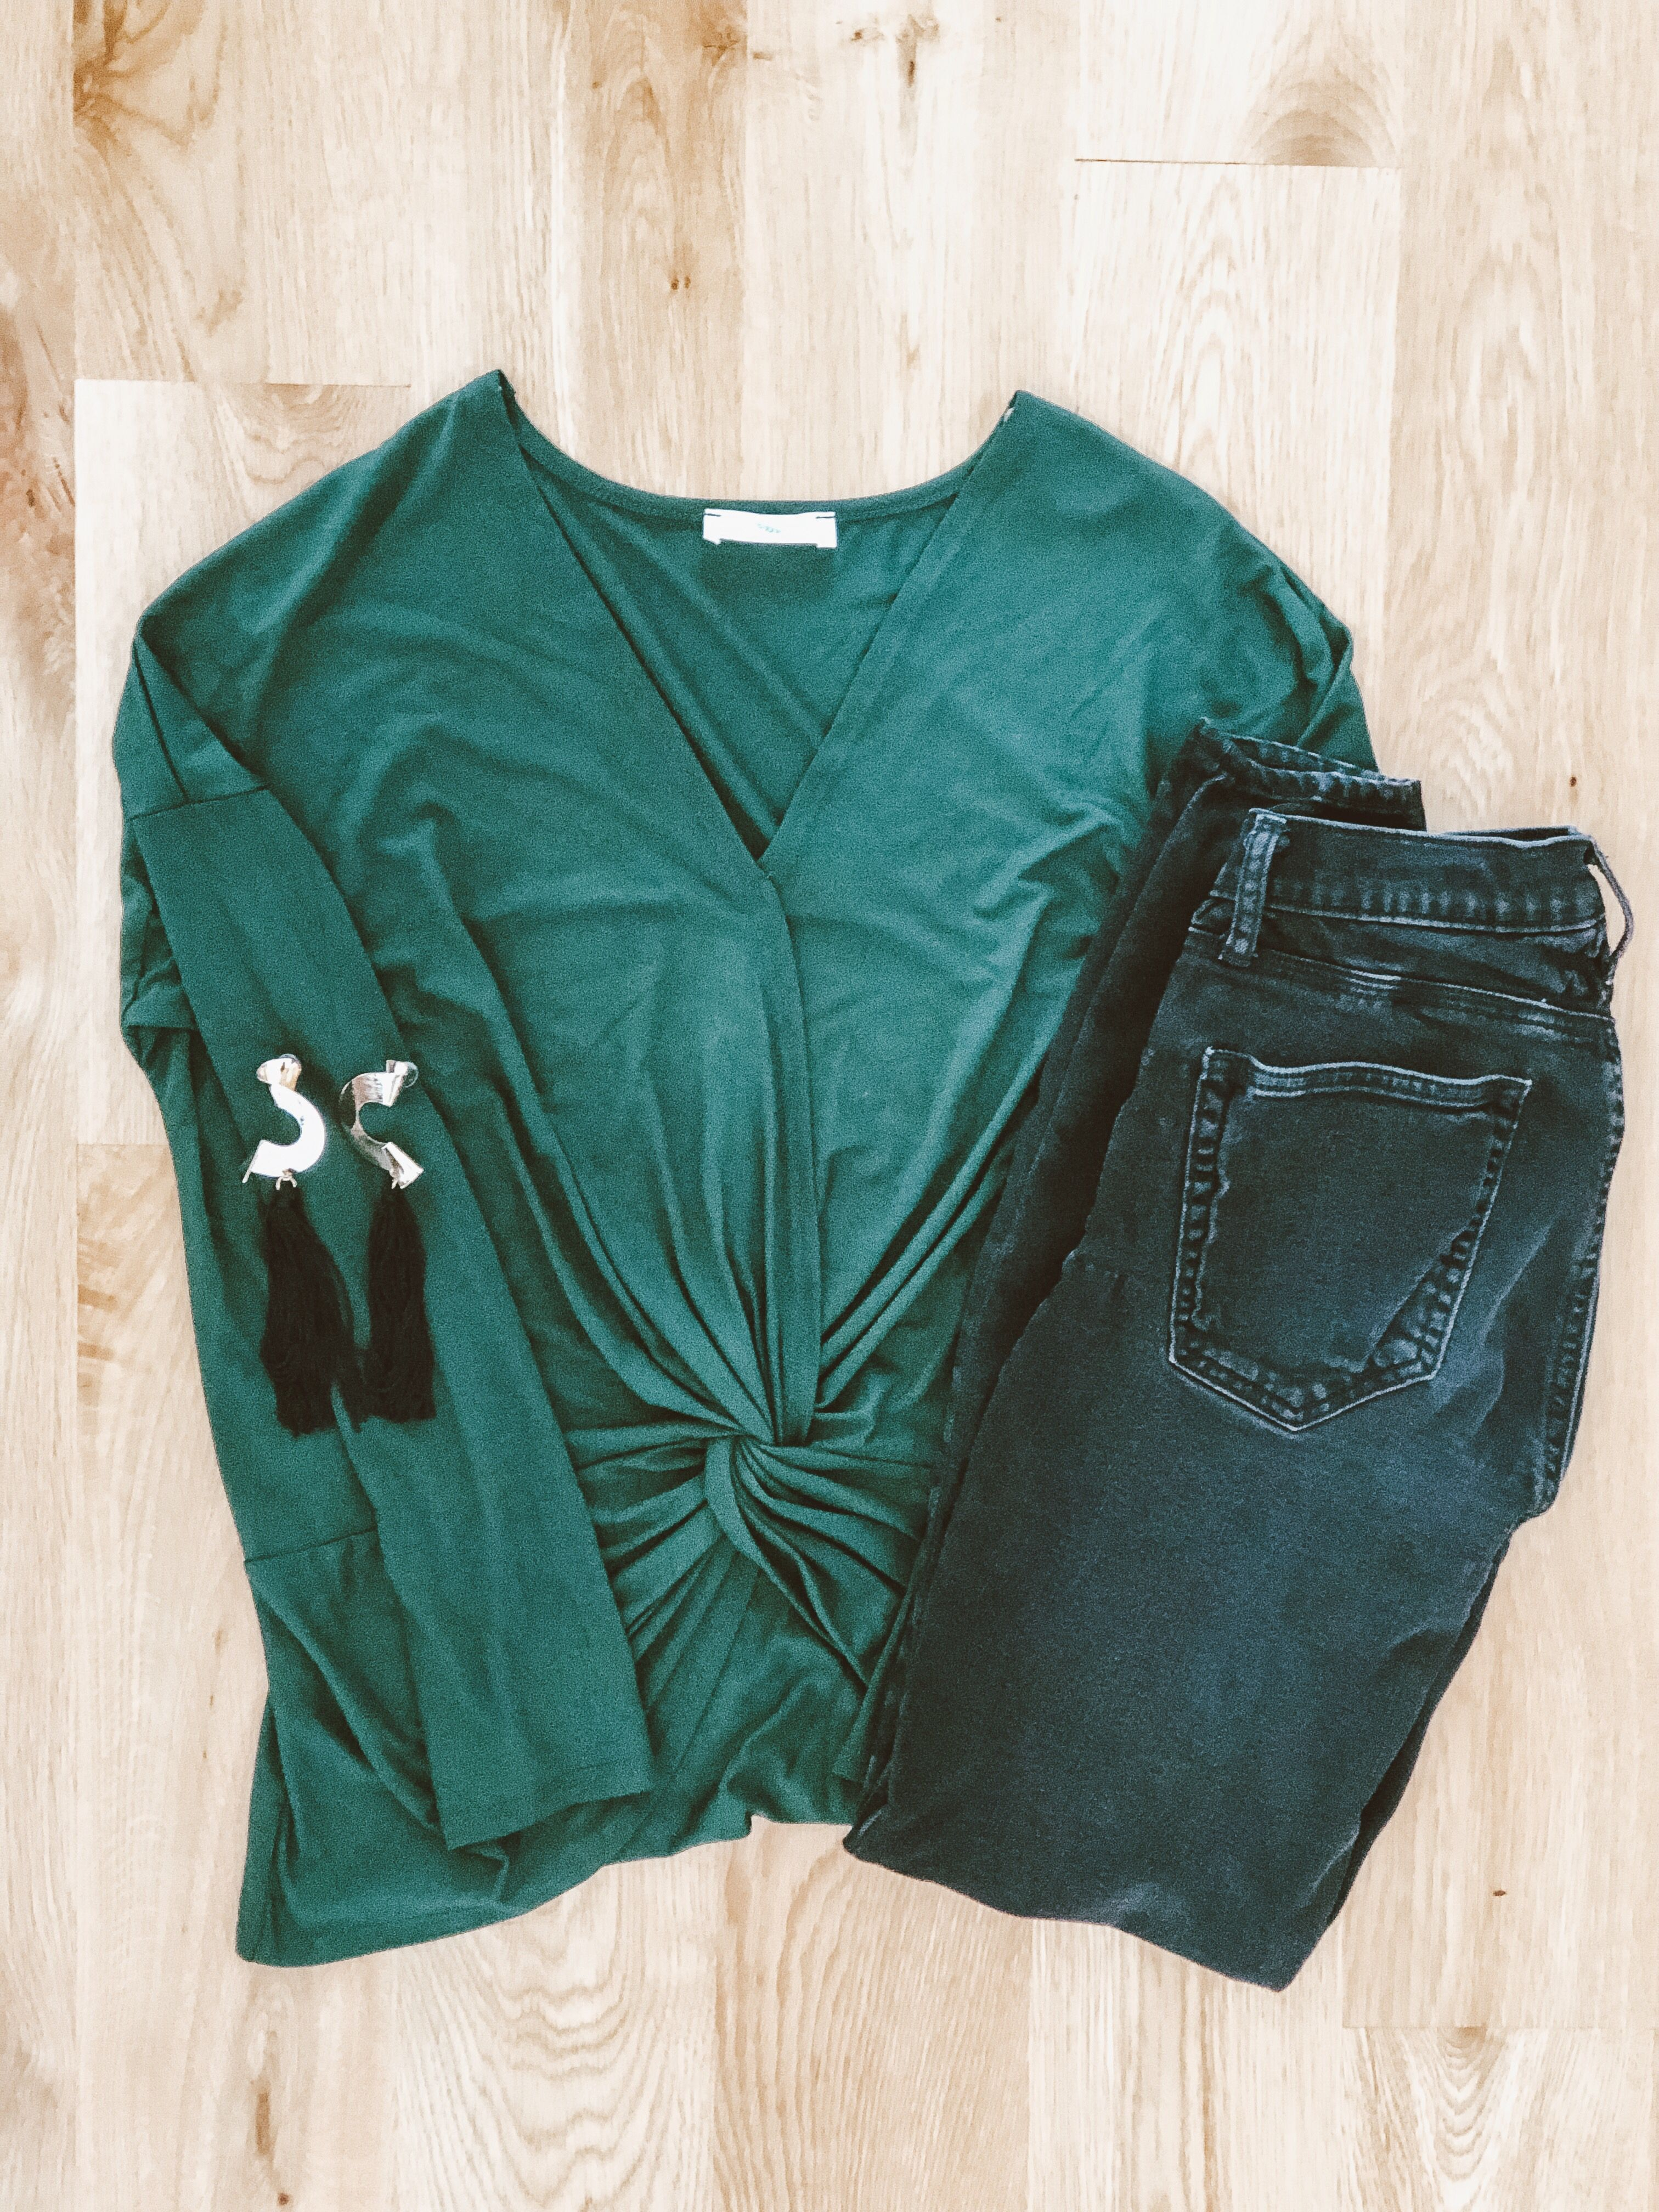 ecd3ca8f1c06b Our Lauren VNeck Top is a great top for work! We pair it with black